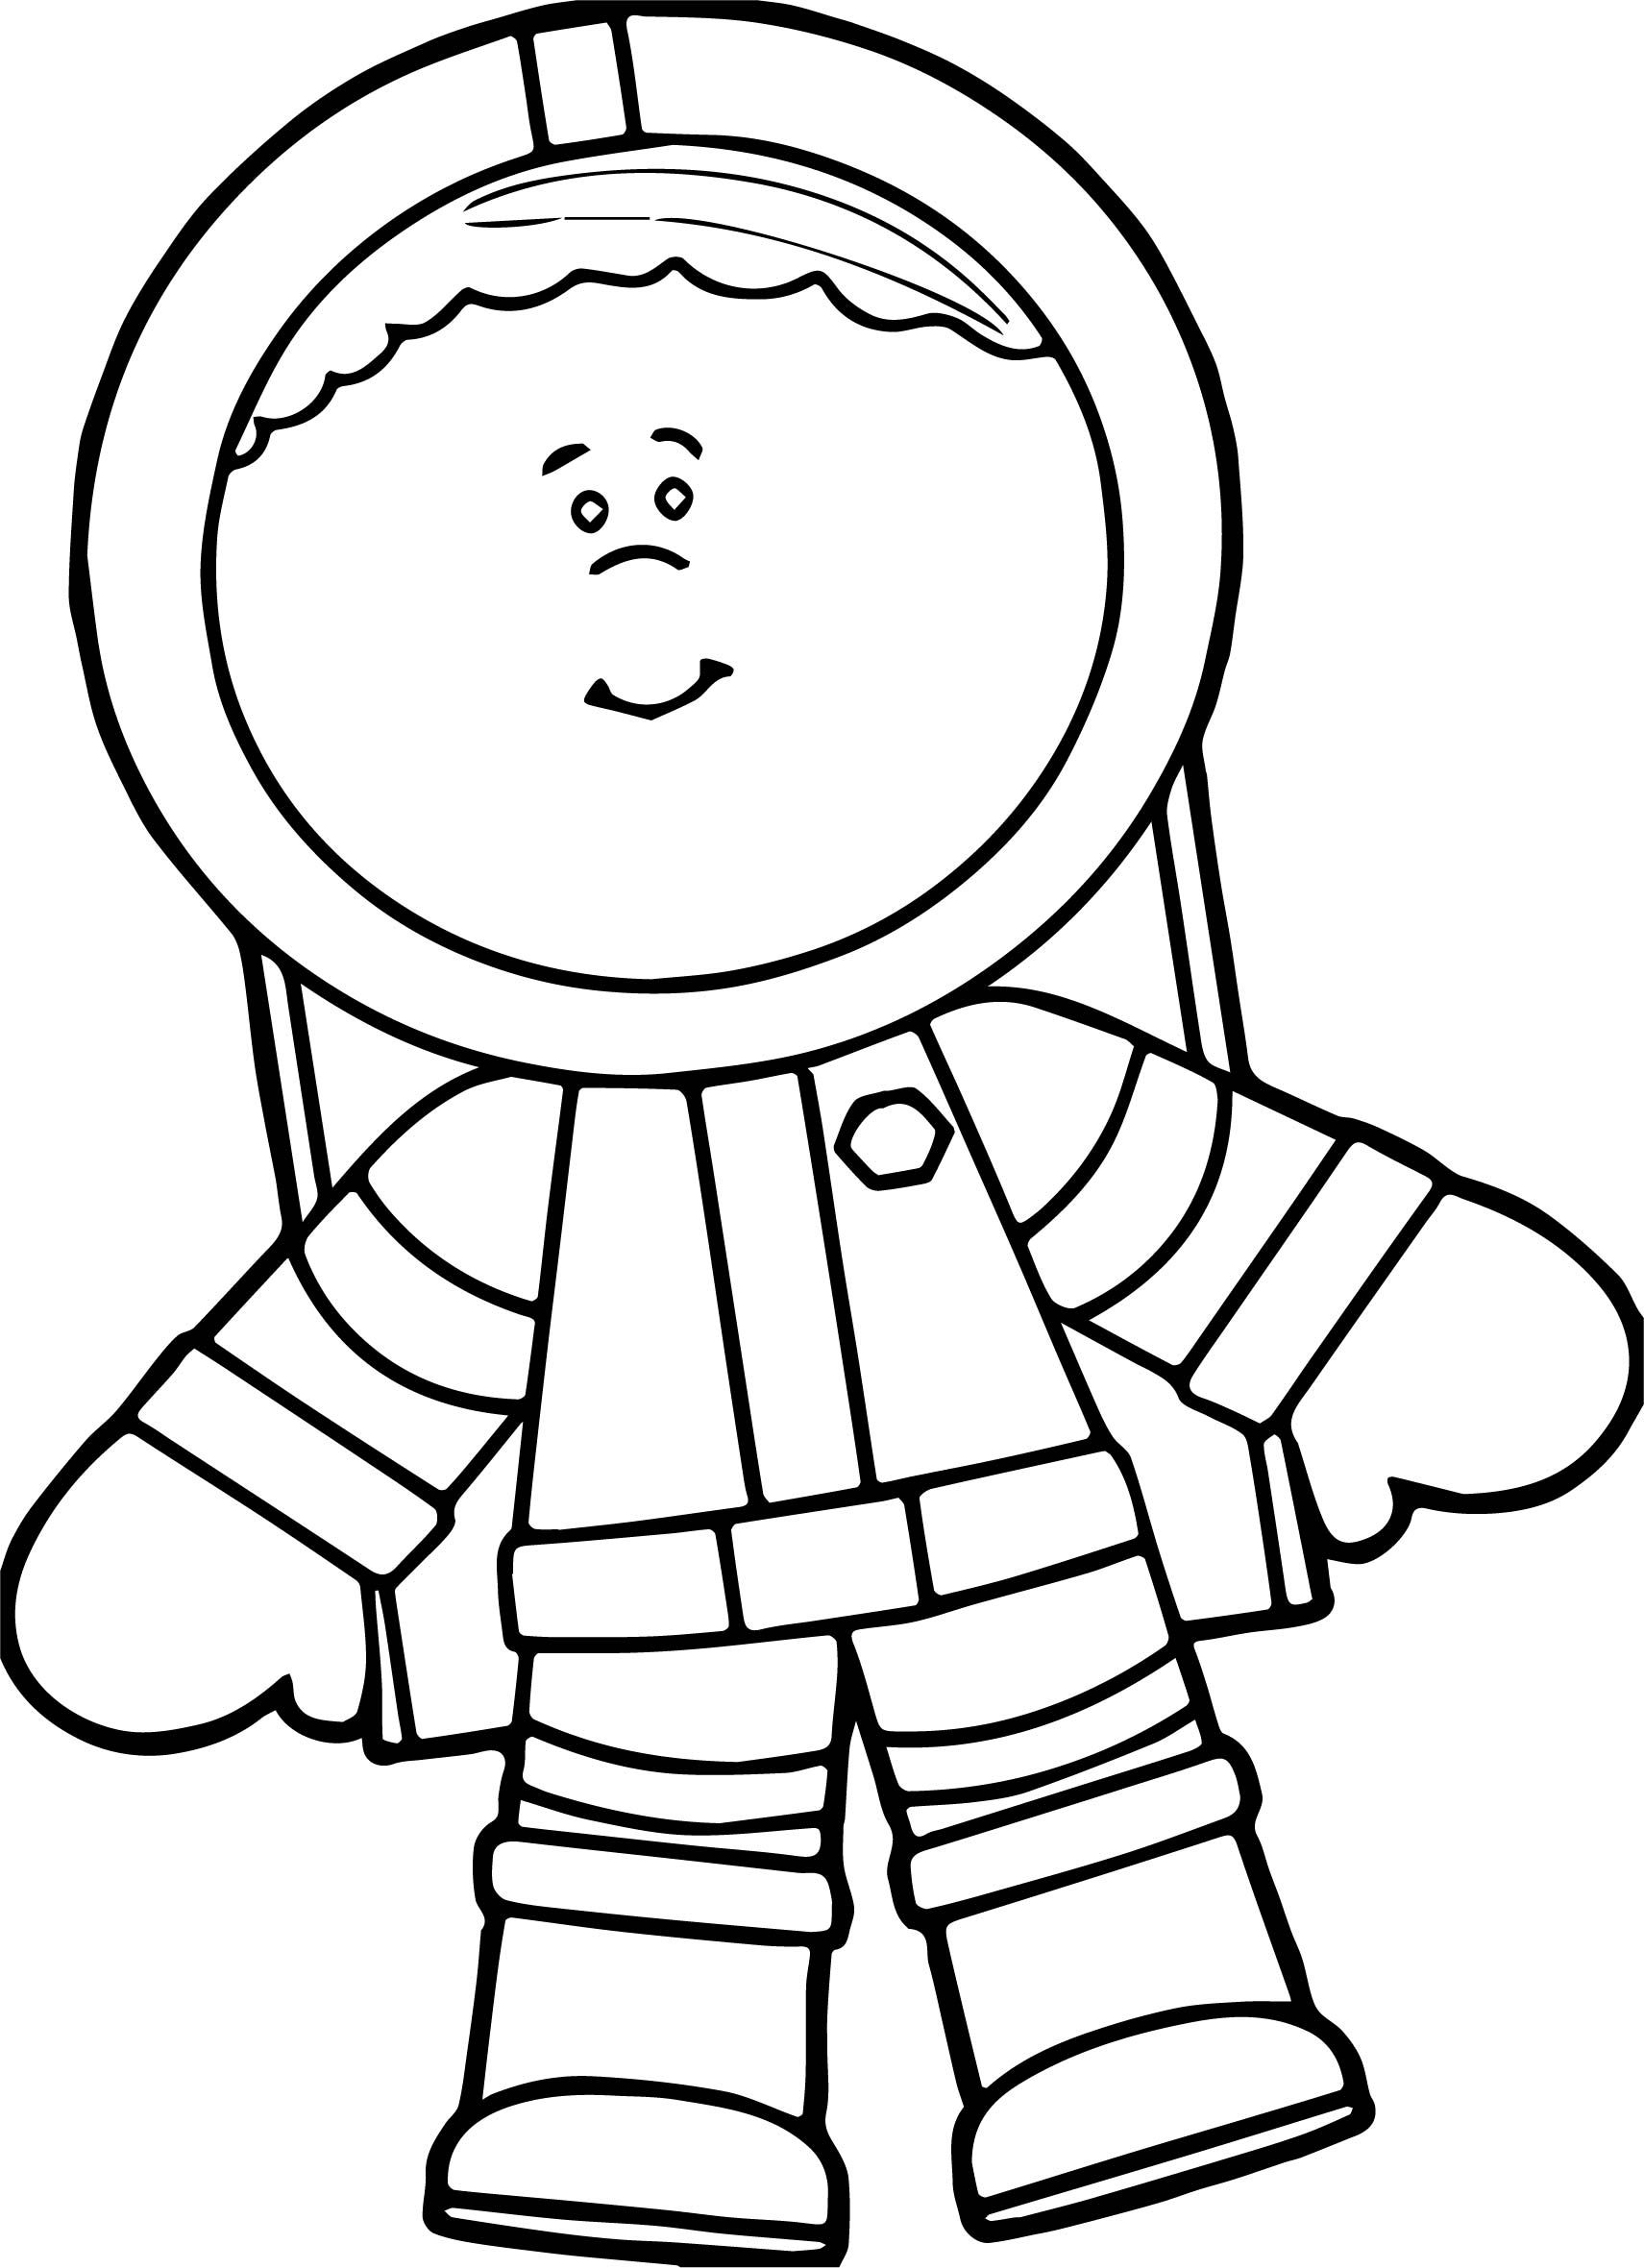 Cool Cute Astronaut Boy Coloring Page